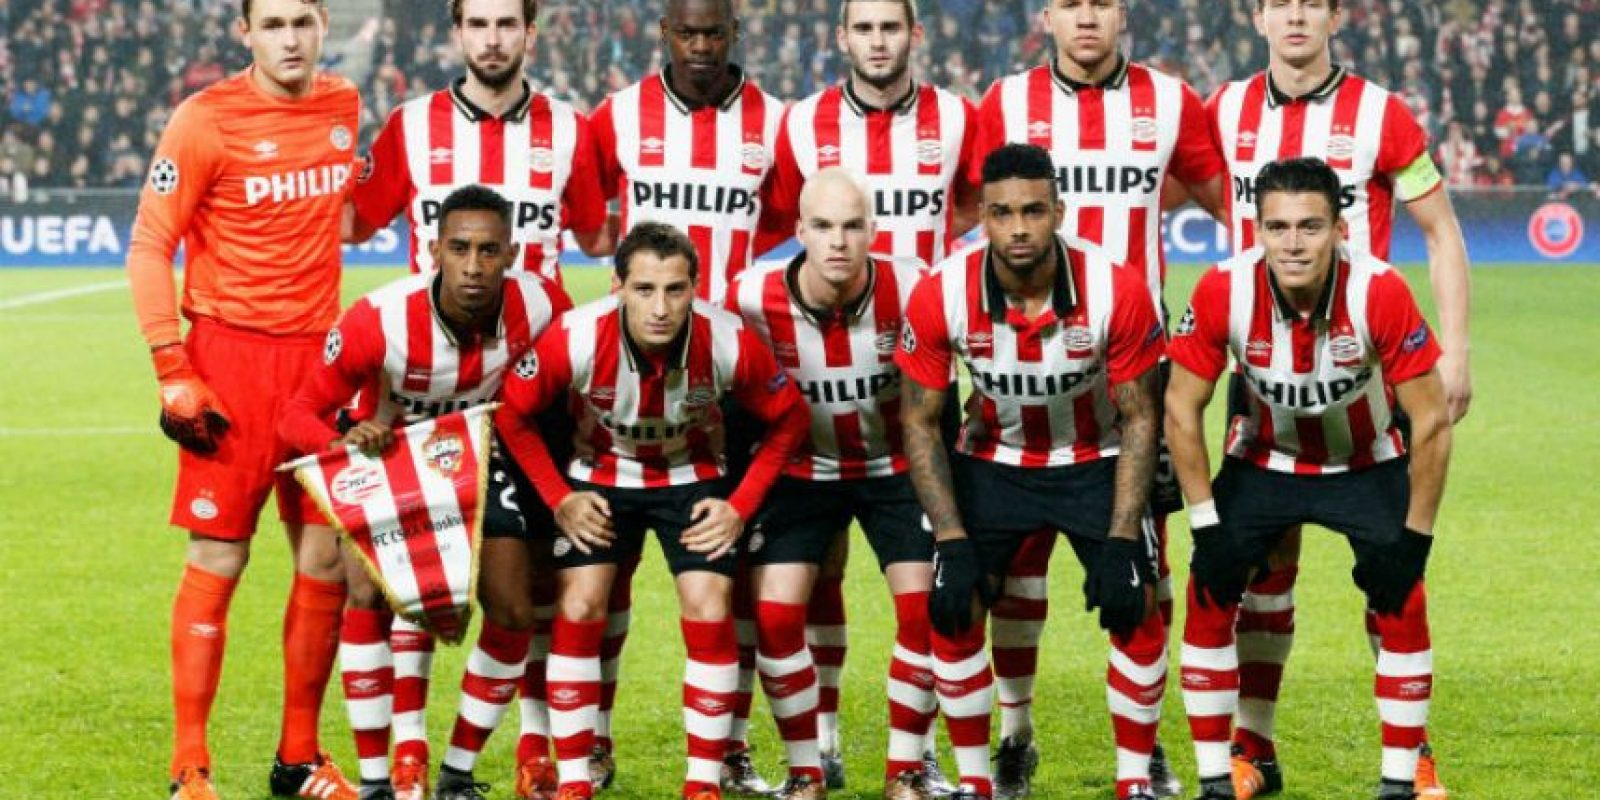 4. PSV Foto: Getty Images